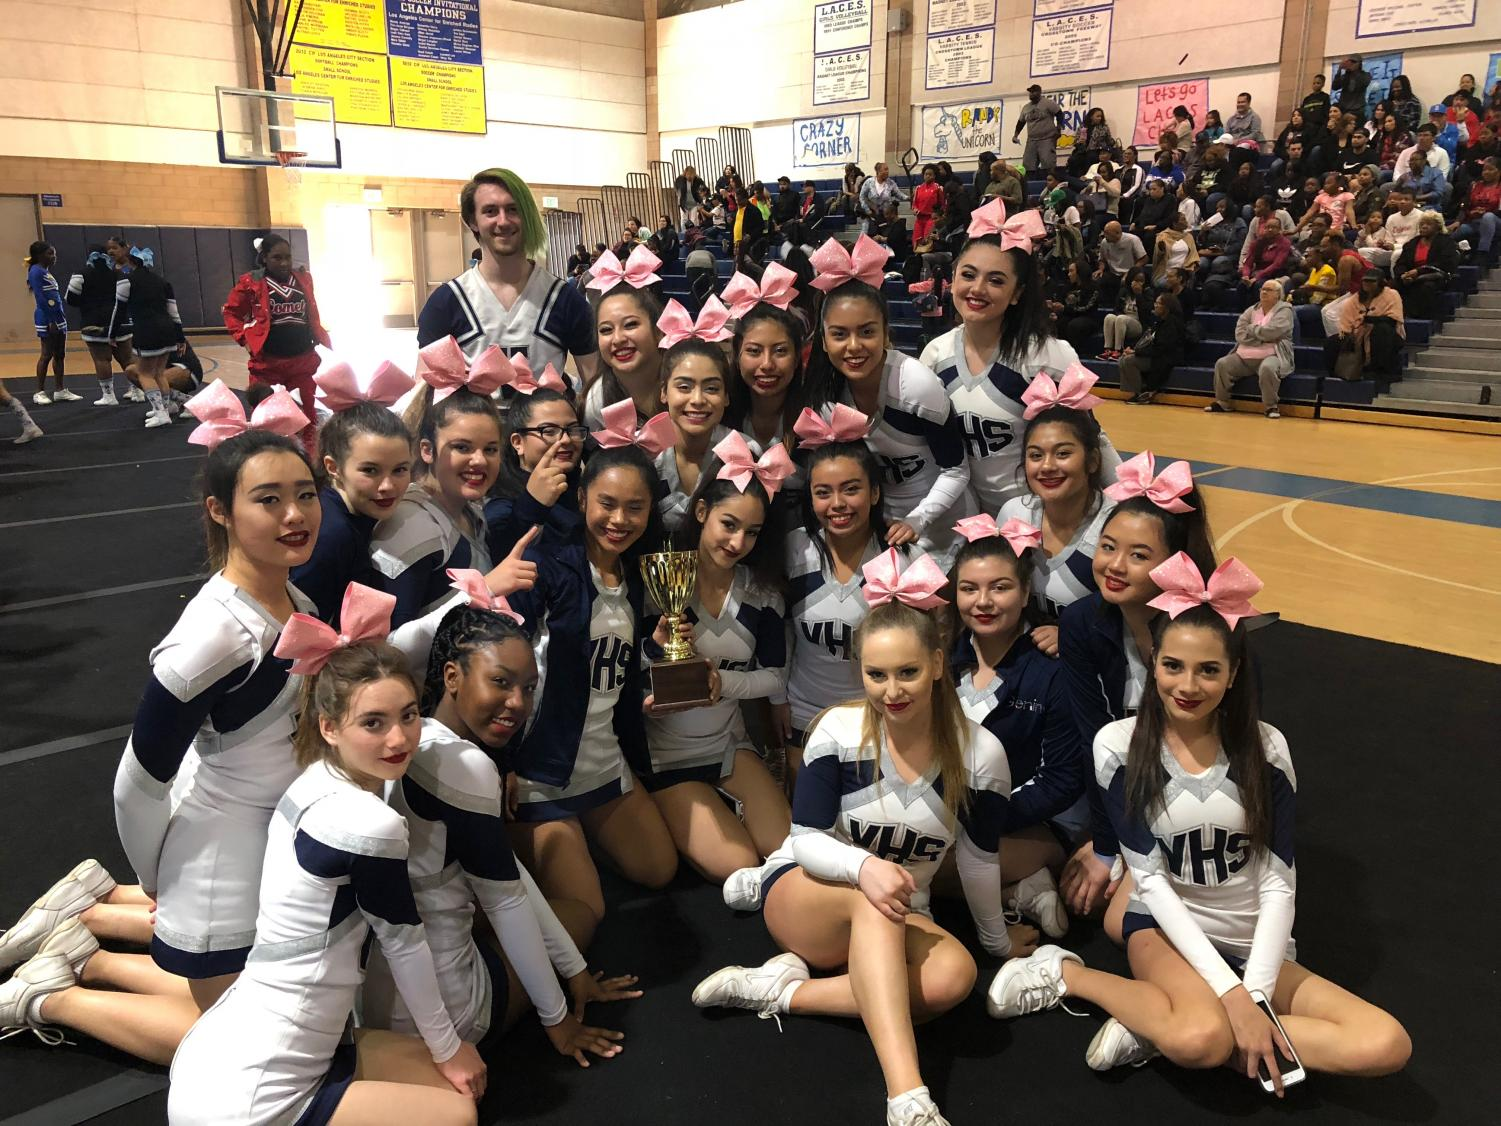 Varsity Cheer poses for photo after winning 2nd place